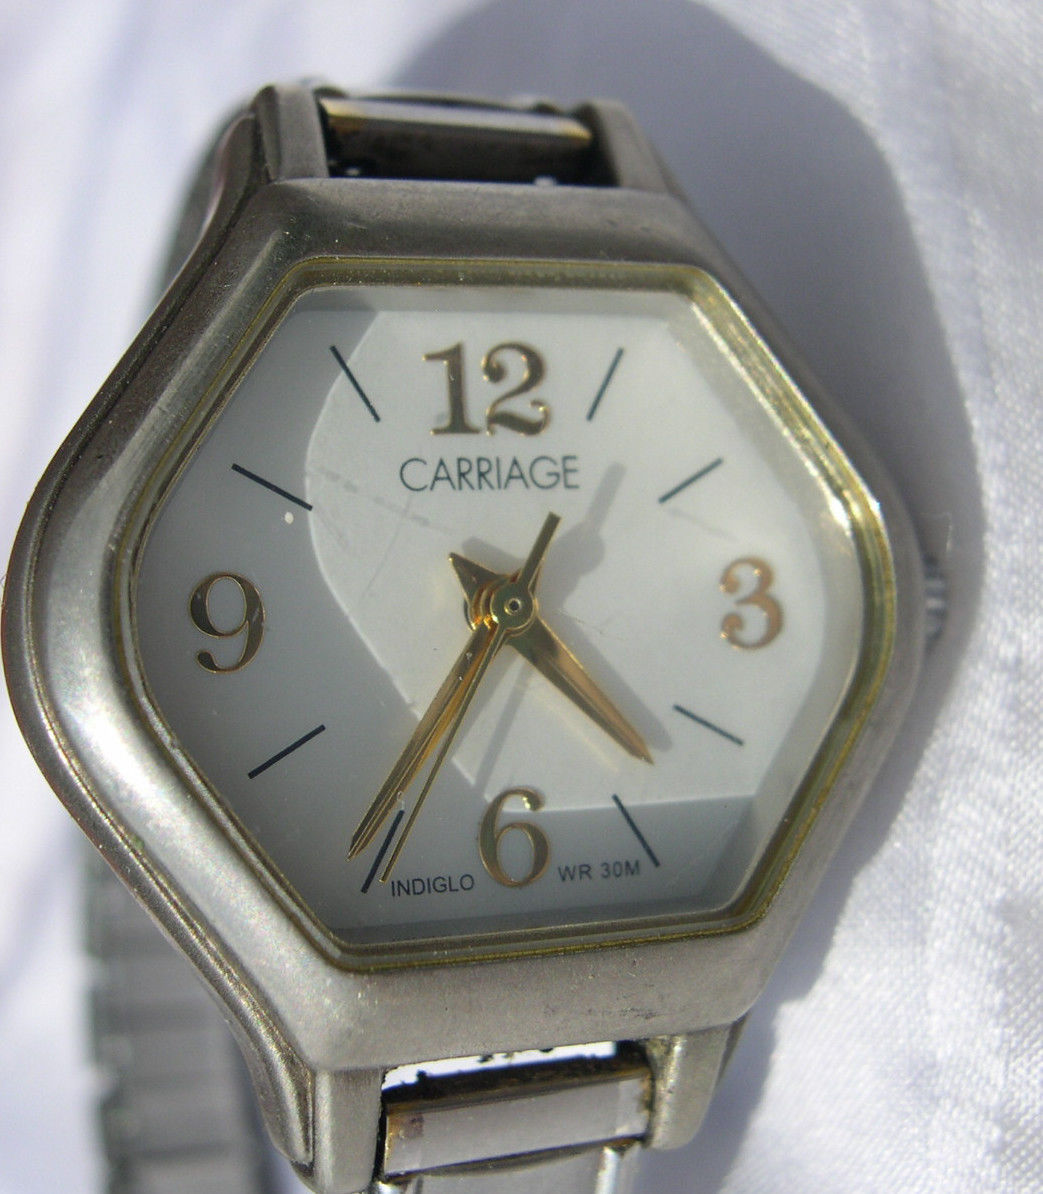 Primary image for L35, Carriage, Octagonal White Faced Watch, Silver Tone Flex Band